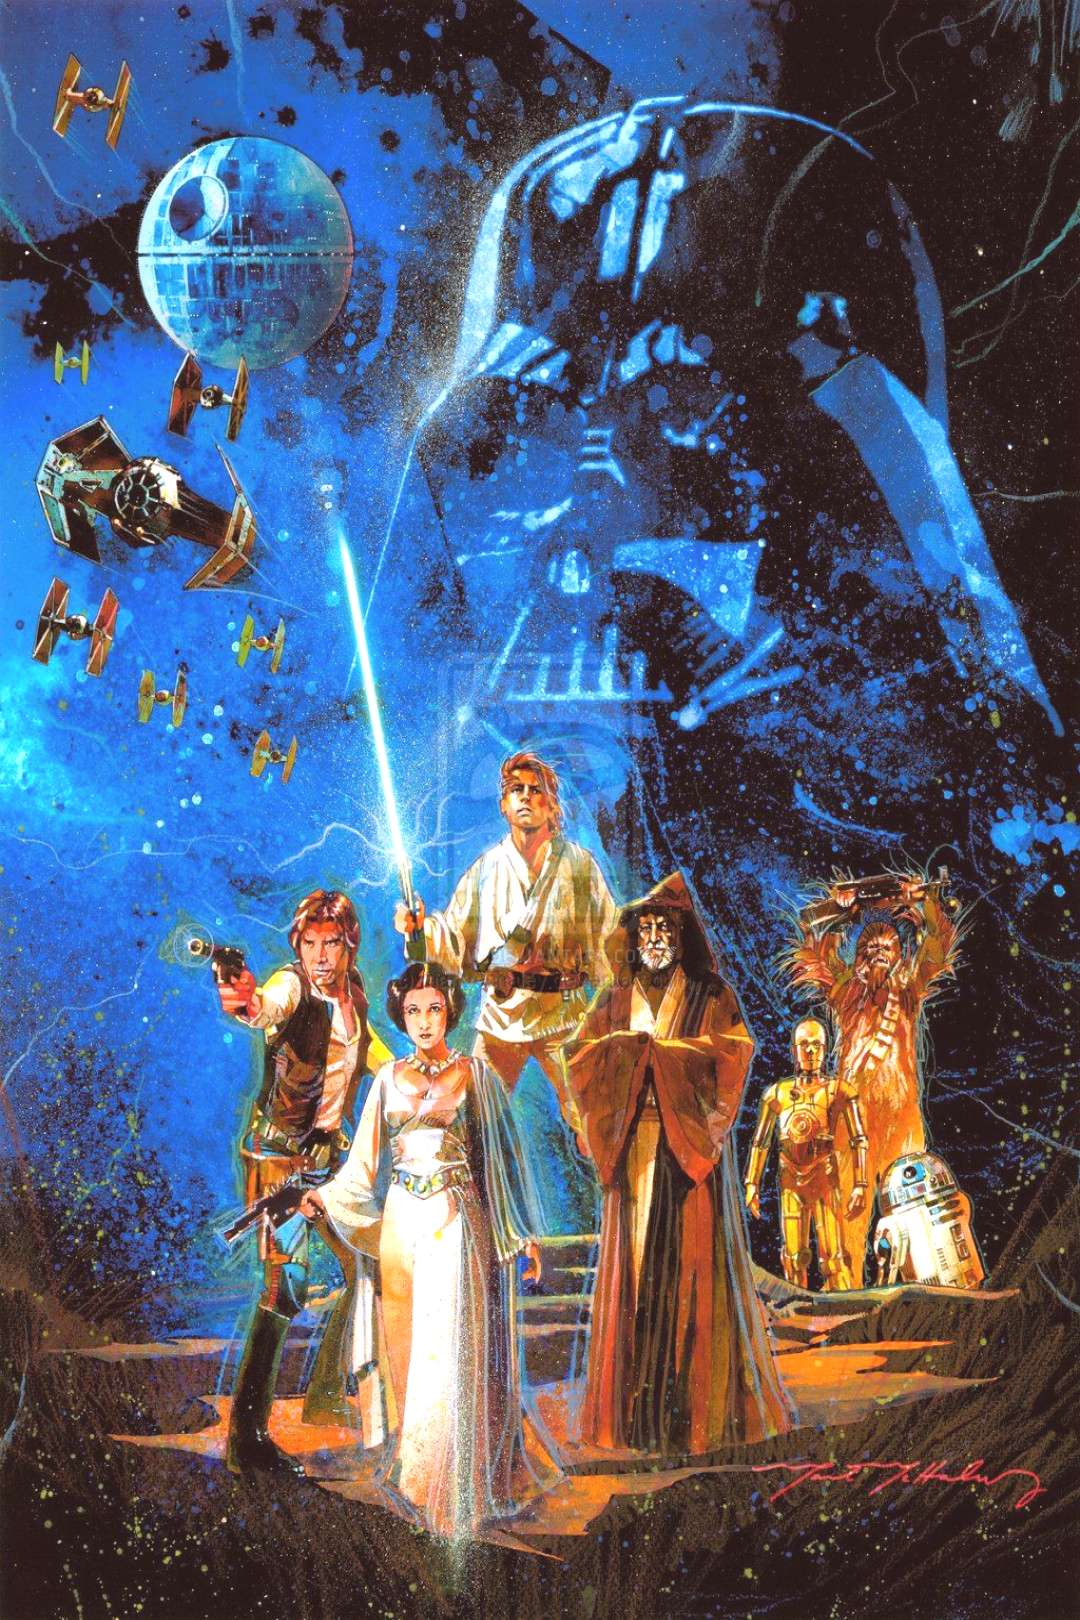 Topps commissioned illustrator Mark Mchaley to recreate the Original STAR WARS Poster, immortalized